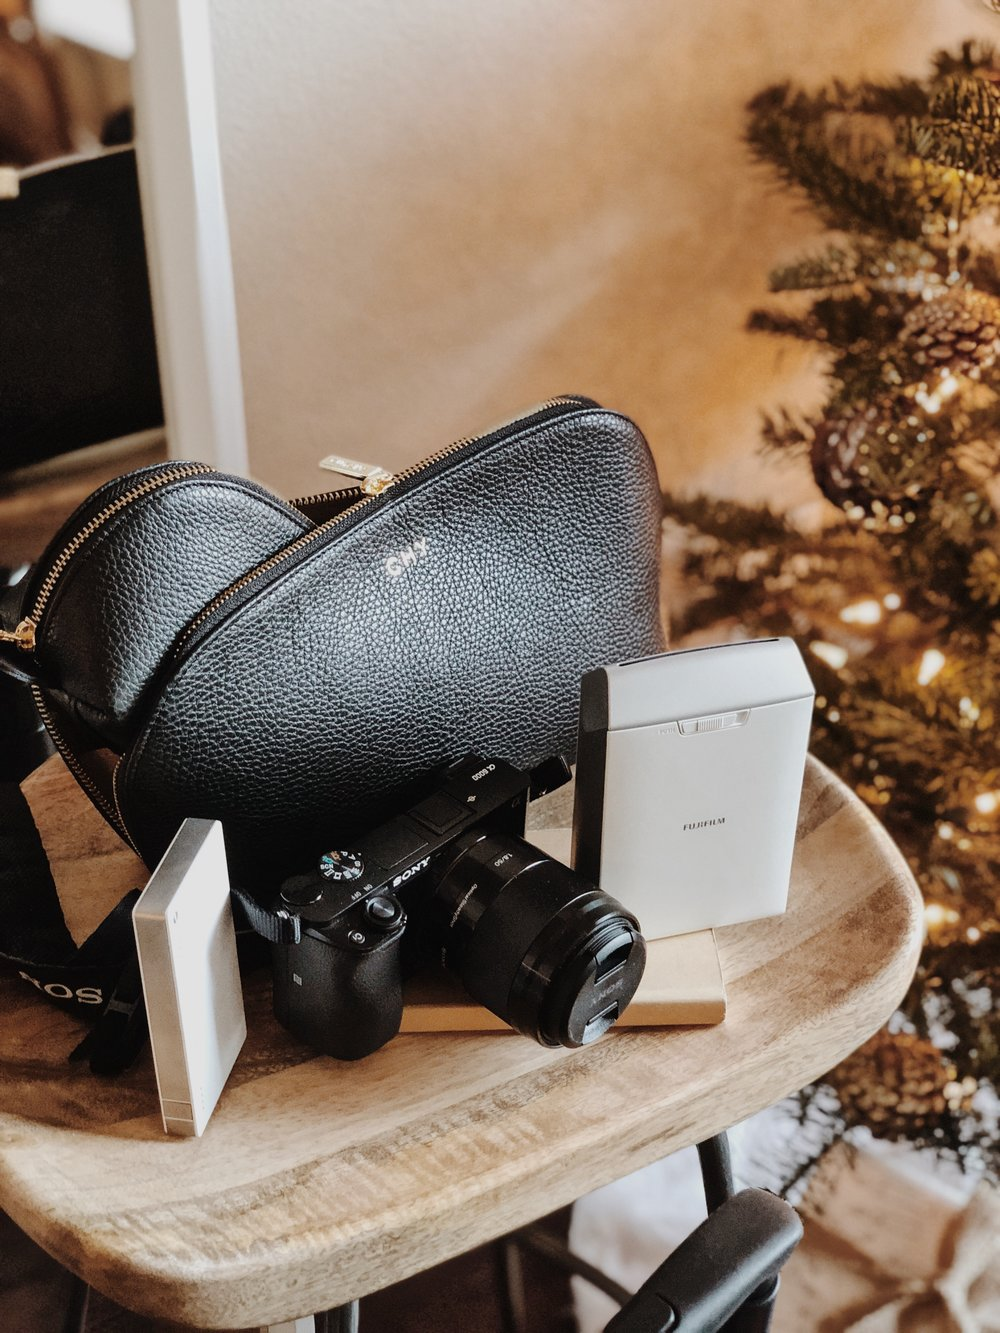 CHY Gift Guide Traveler Gifts, Cuyana Makeup Bag, Sony a6000, Fujifilm